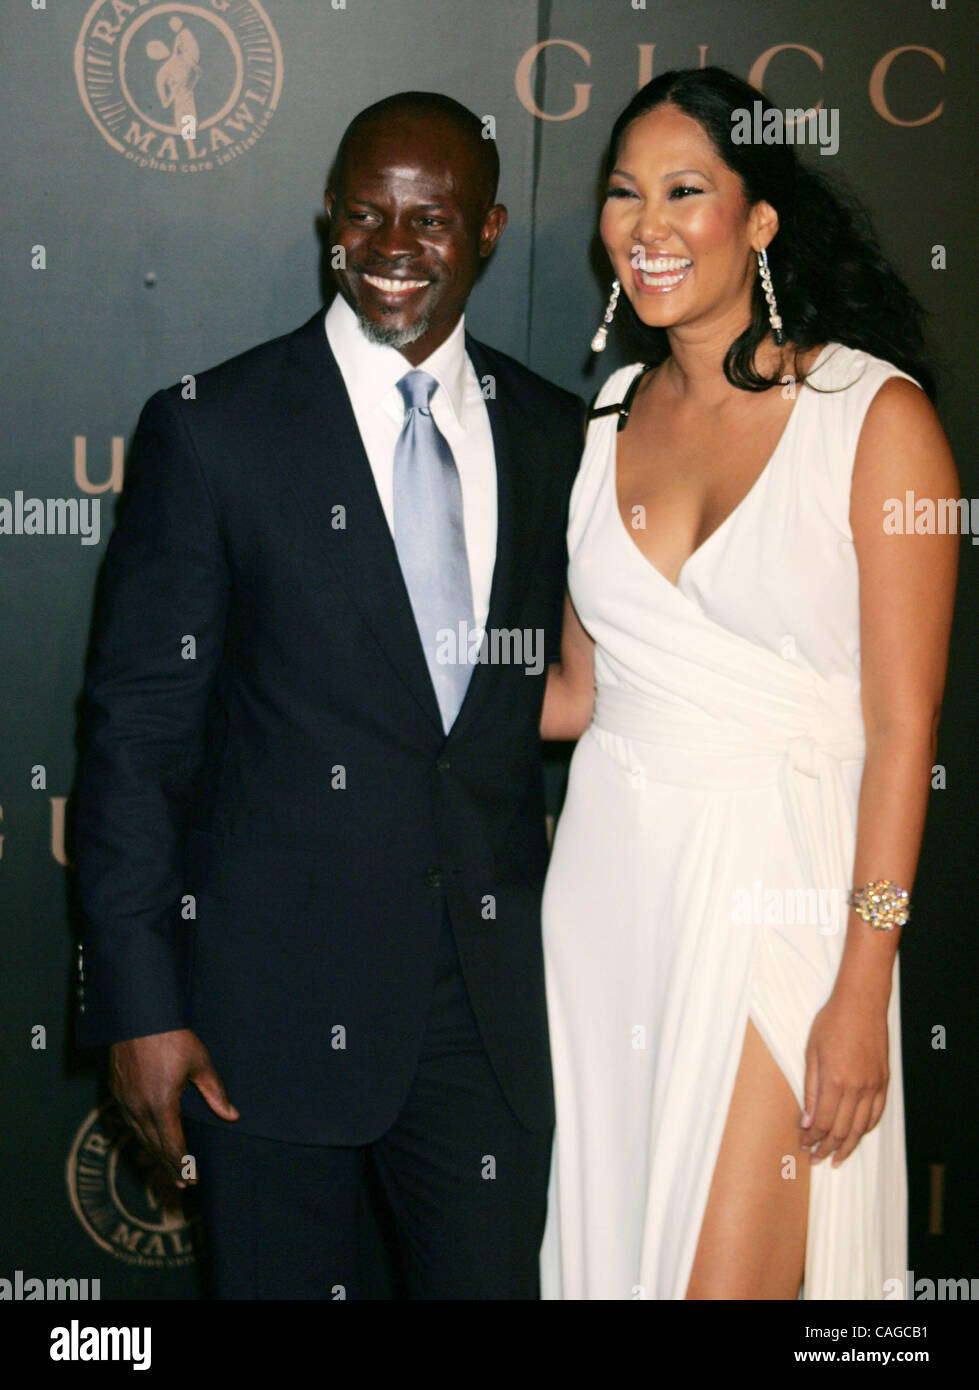 Found Djimon hounsou and kimora lee simmons are mistaken